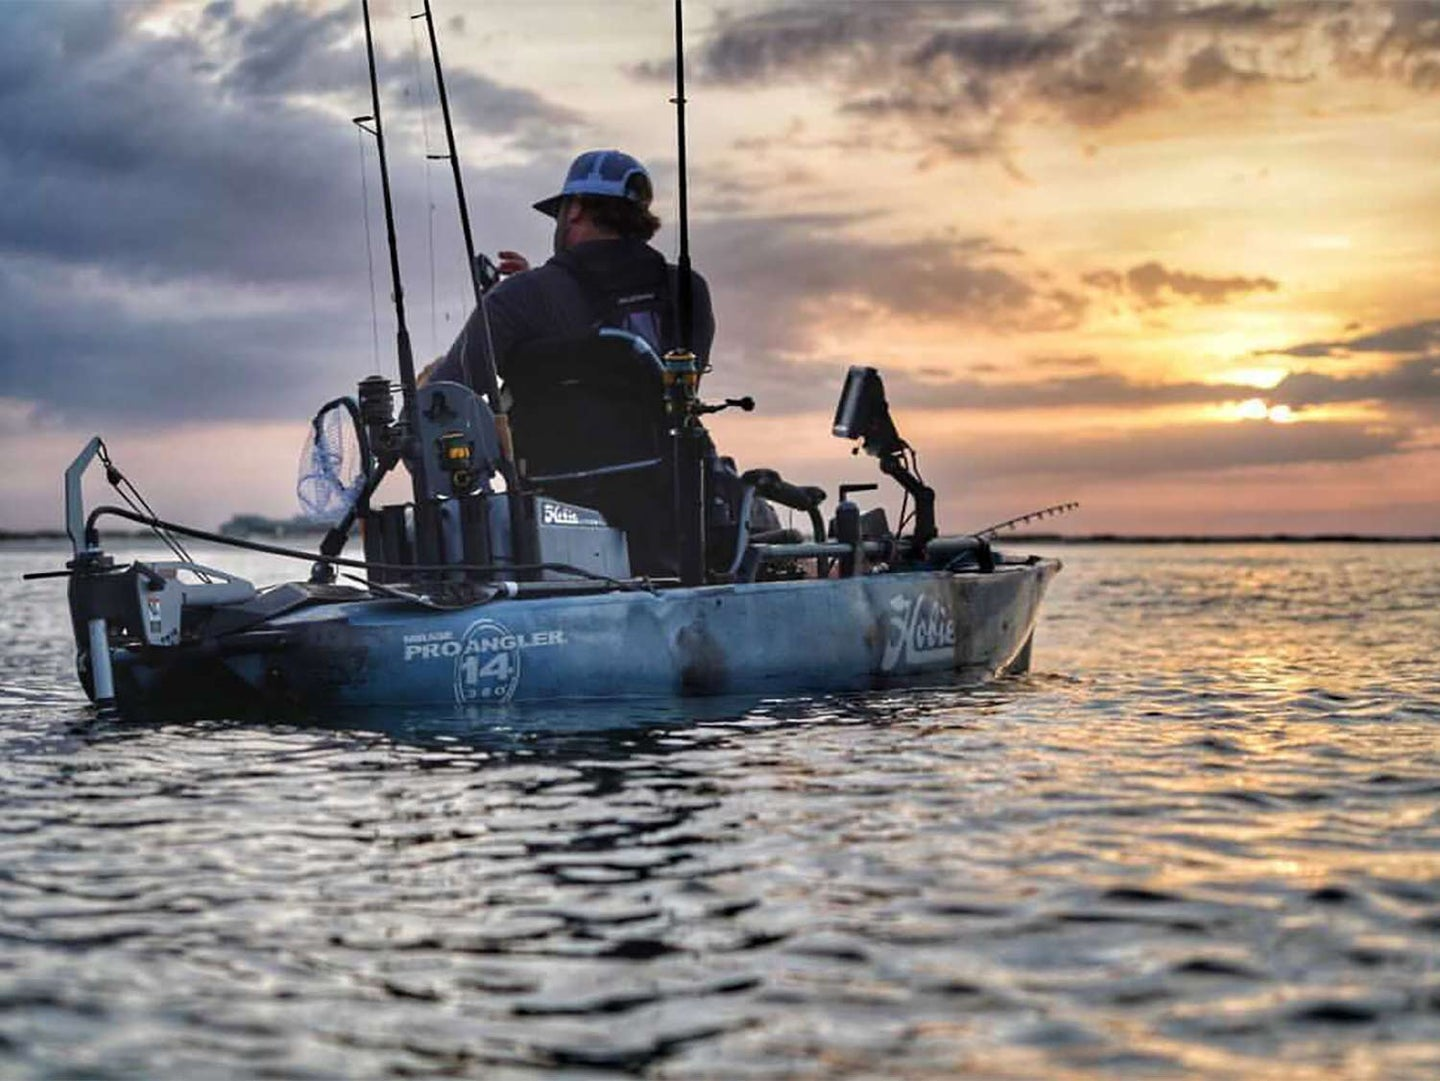 An angler sits on a kayak and fishes.